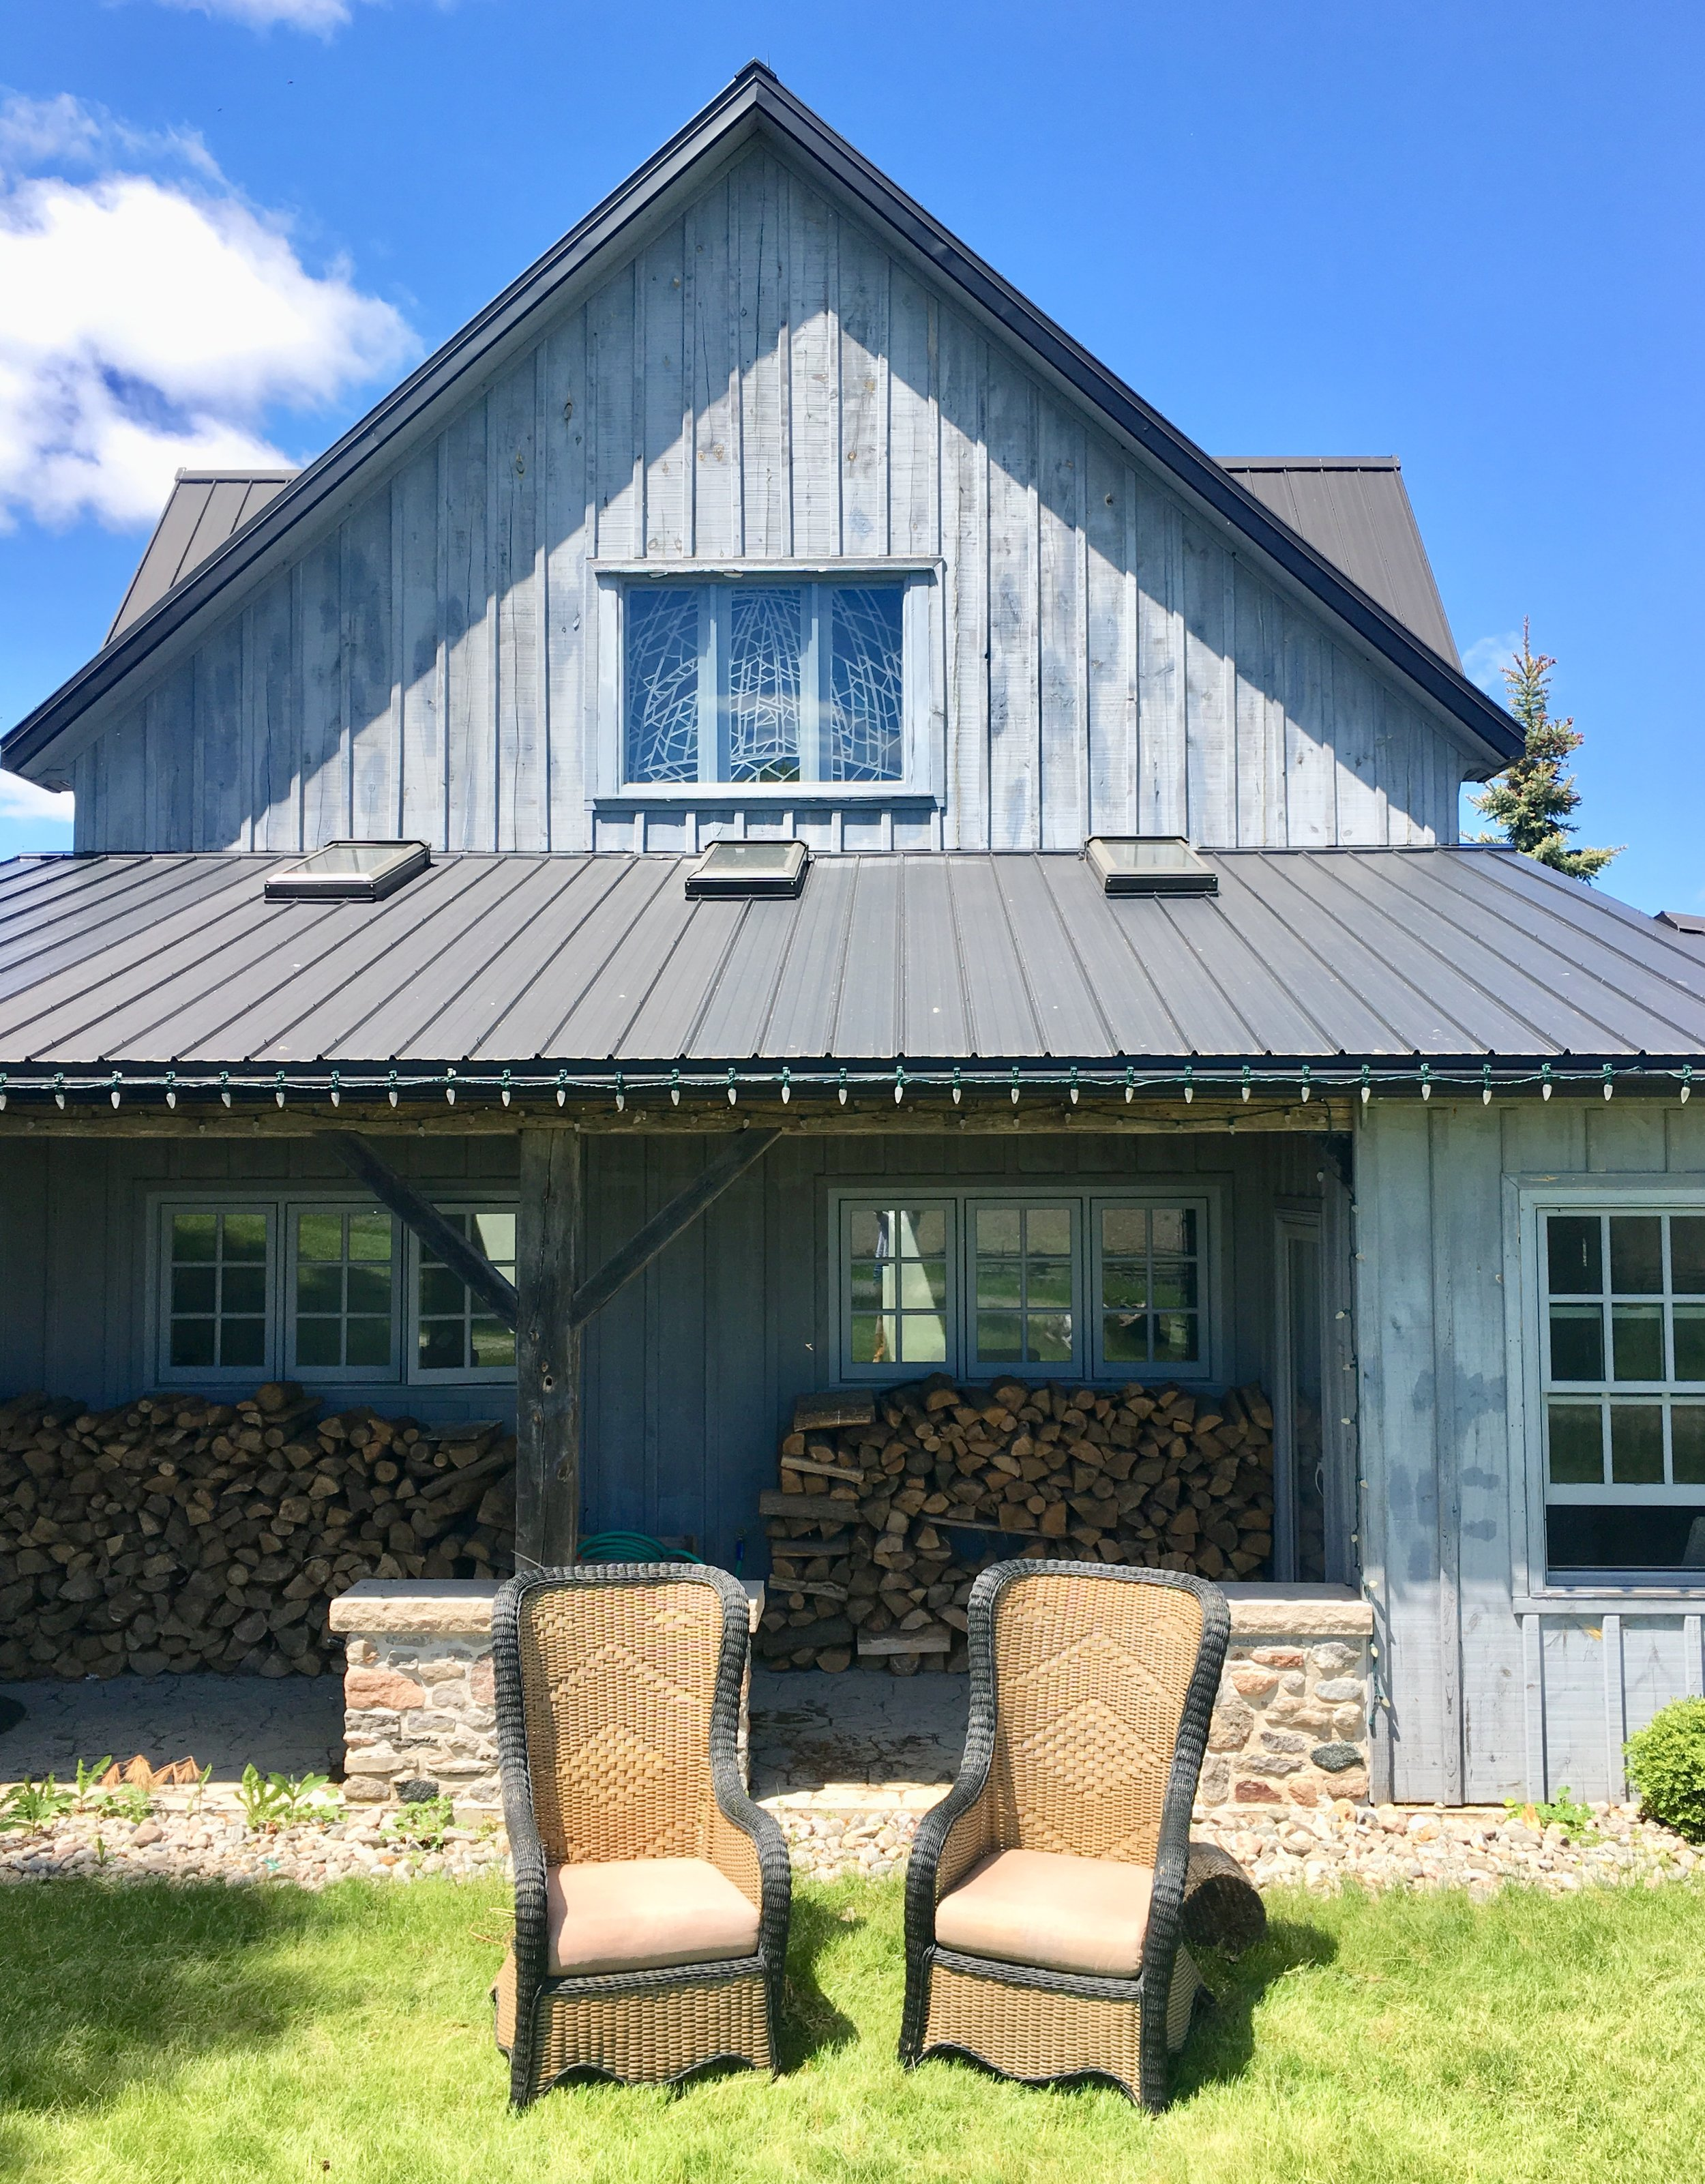 This is the South-facing view of the board-and-batten addition to Drumlin Farmhouse. This exterior shot shows the stained glass window and skylights that we will be making more of a focal point as part of the kitchen renovation. You can also see the sunroom to the right of the stacked firewood.